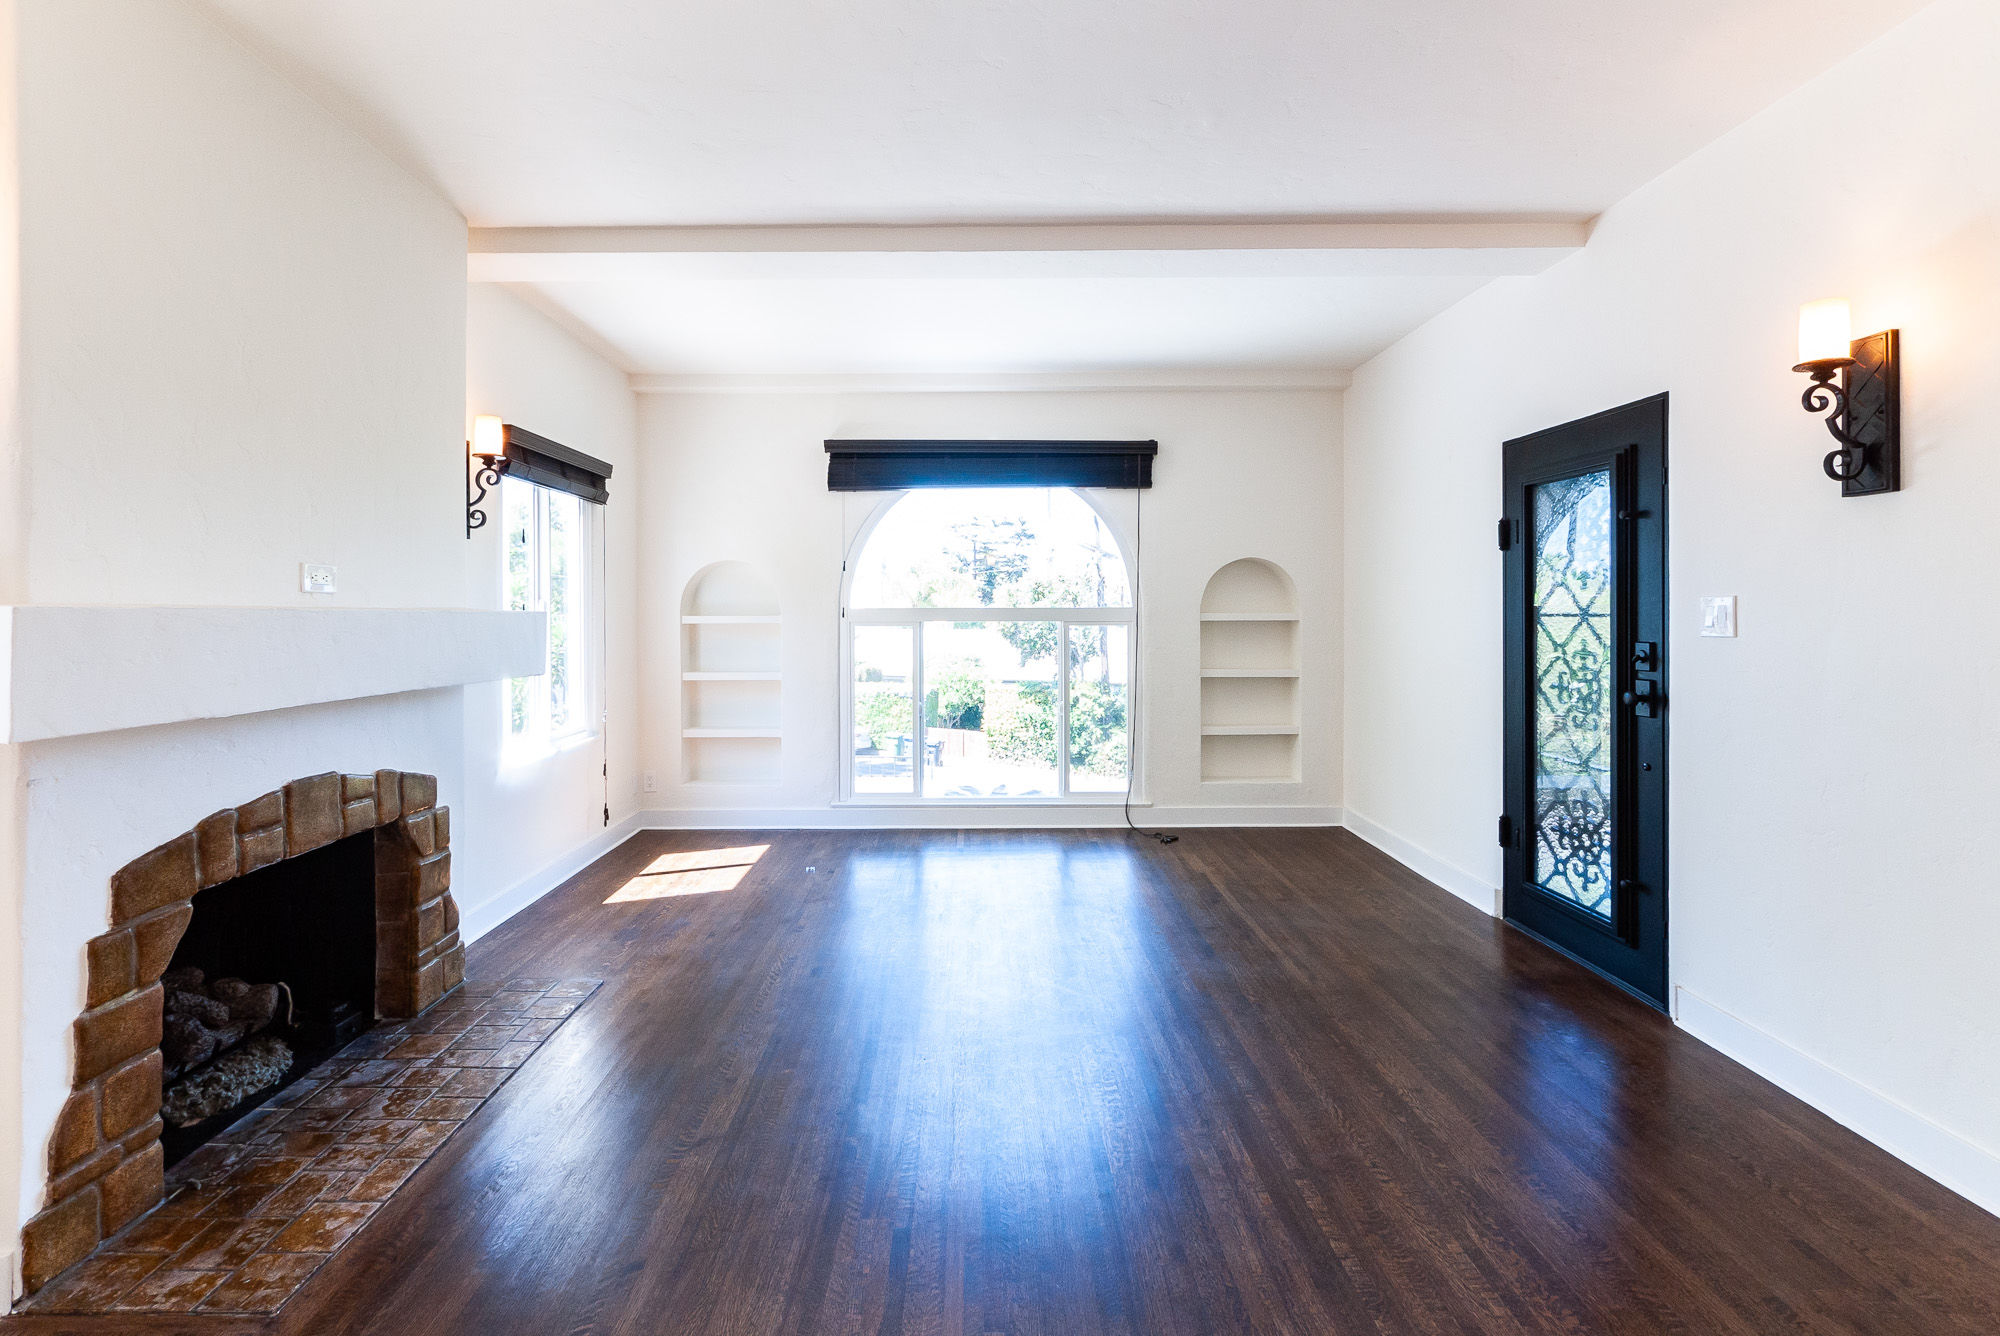 Stunning! Immaculate, Renovated Spanish-Style 2 BD / 1BA Duplex in the Coveted Miracle Mile